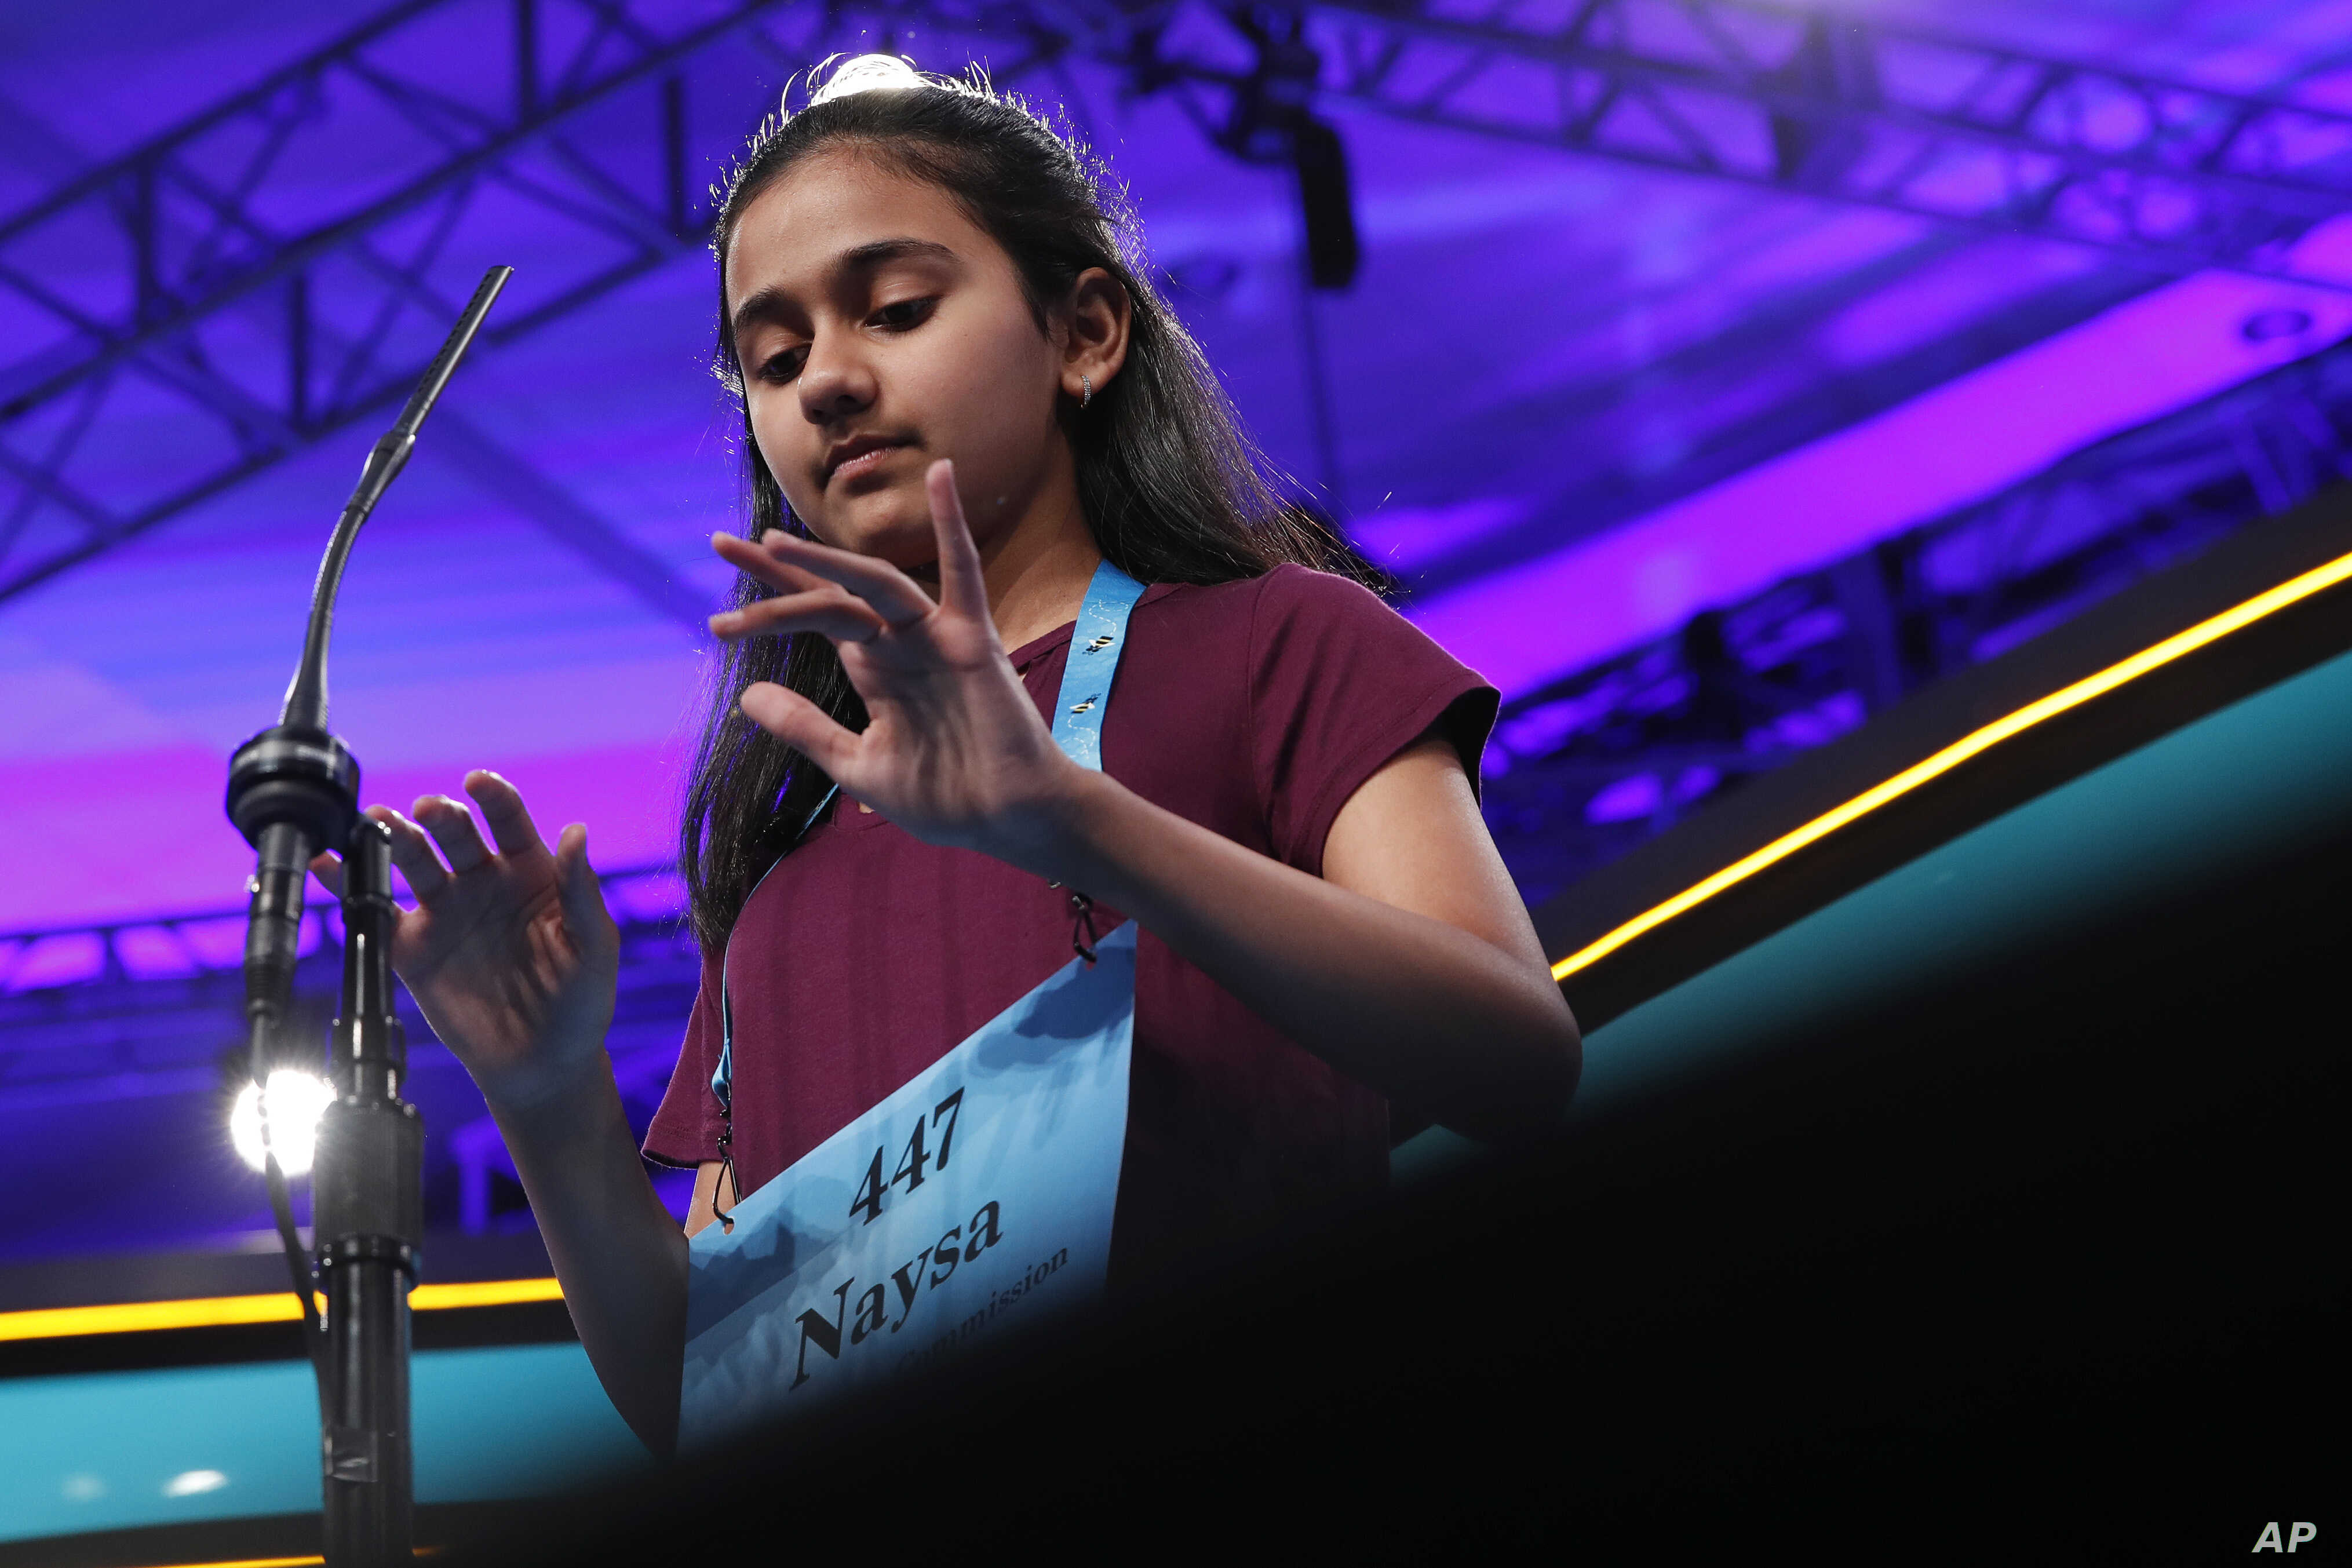 Naysa Modi, 12, from Frisco, Texas, types her word in the air while spelling correctly during the evening finals of the Scripps National Spelling Bee in Oxon Hill, Md., May 31, 2018.